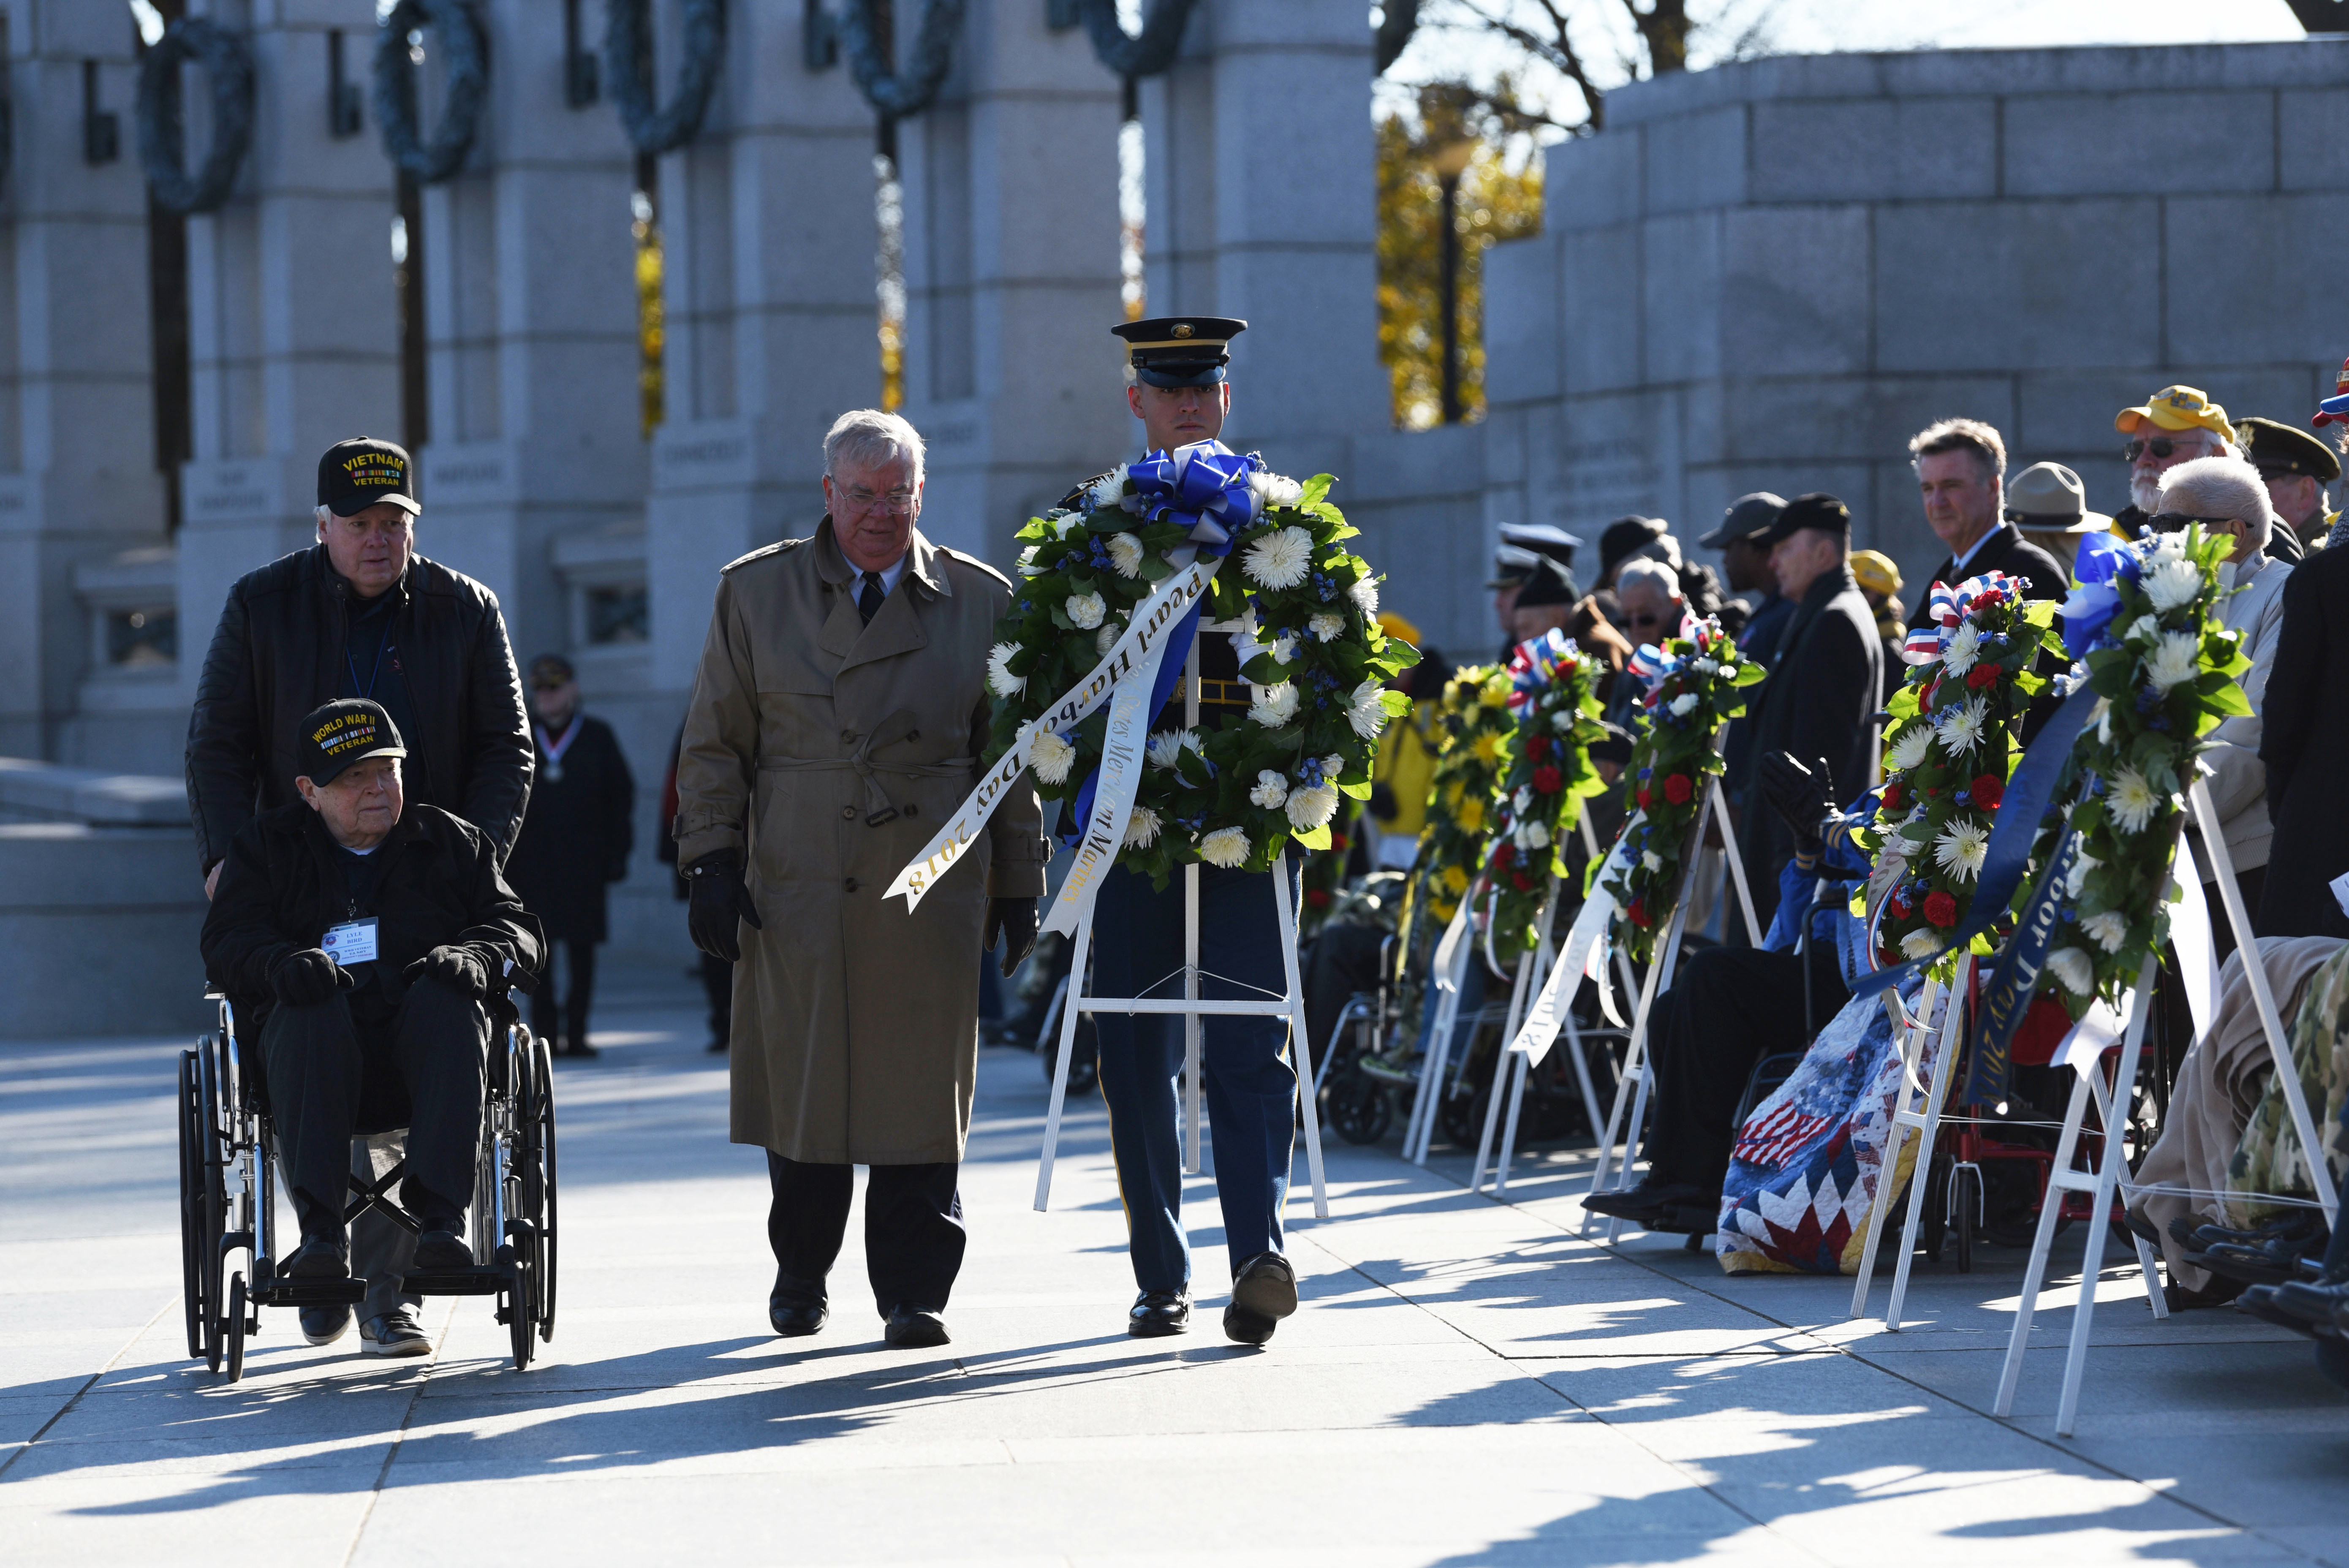 veteran at wreath ceremony in Washington on Pearl Harbor day